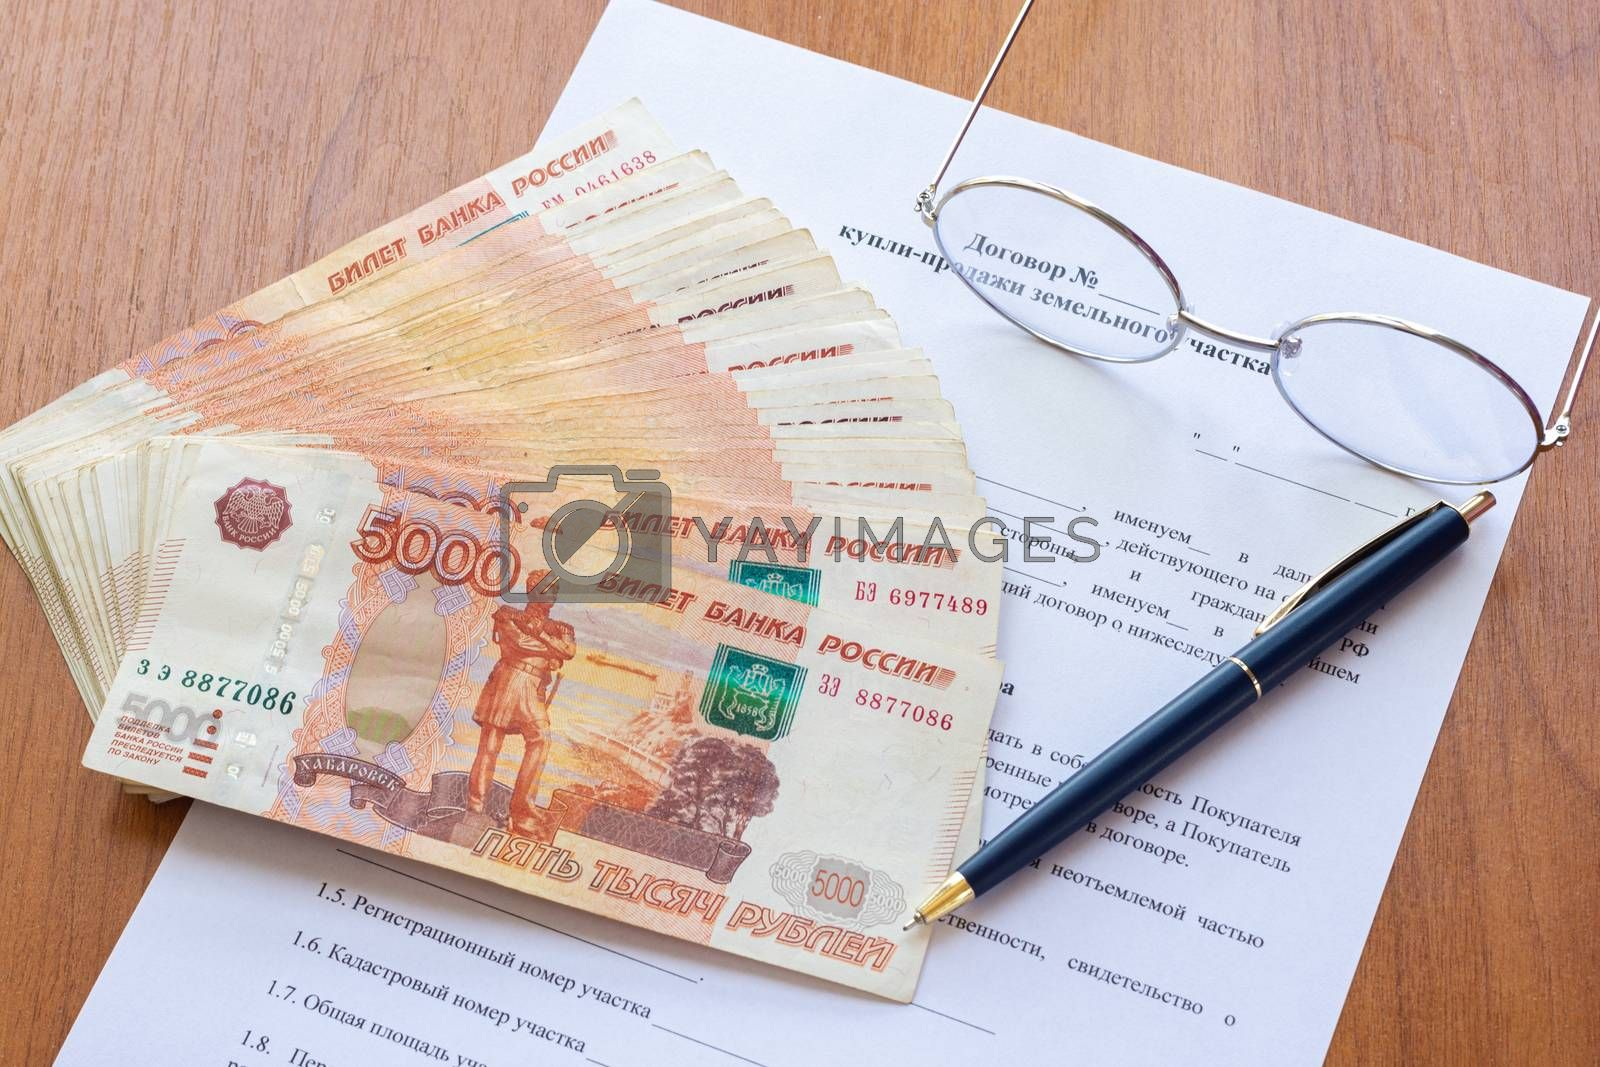 On the table is a contract for the sale of a land plot, a bundle of money, a pen and glasses